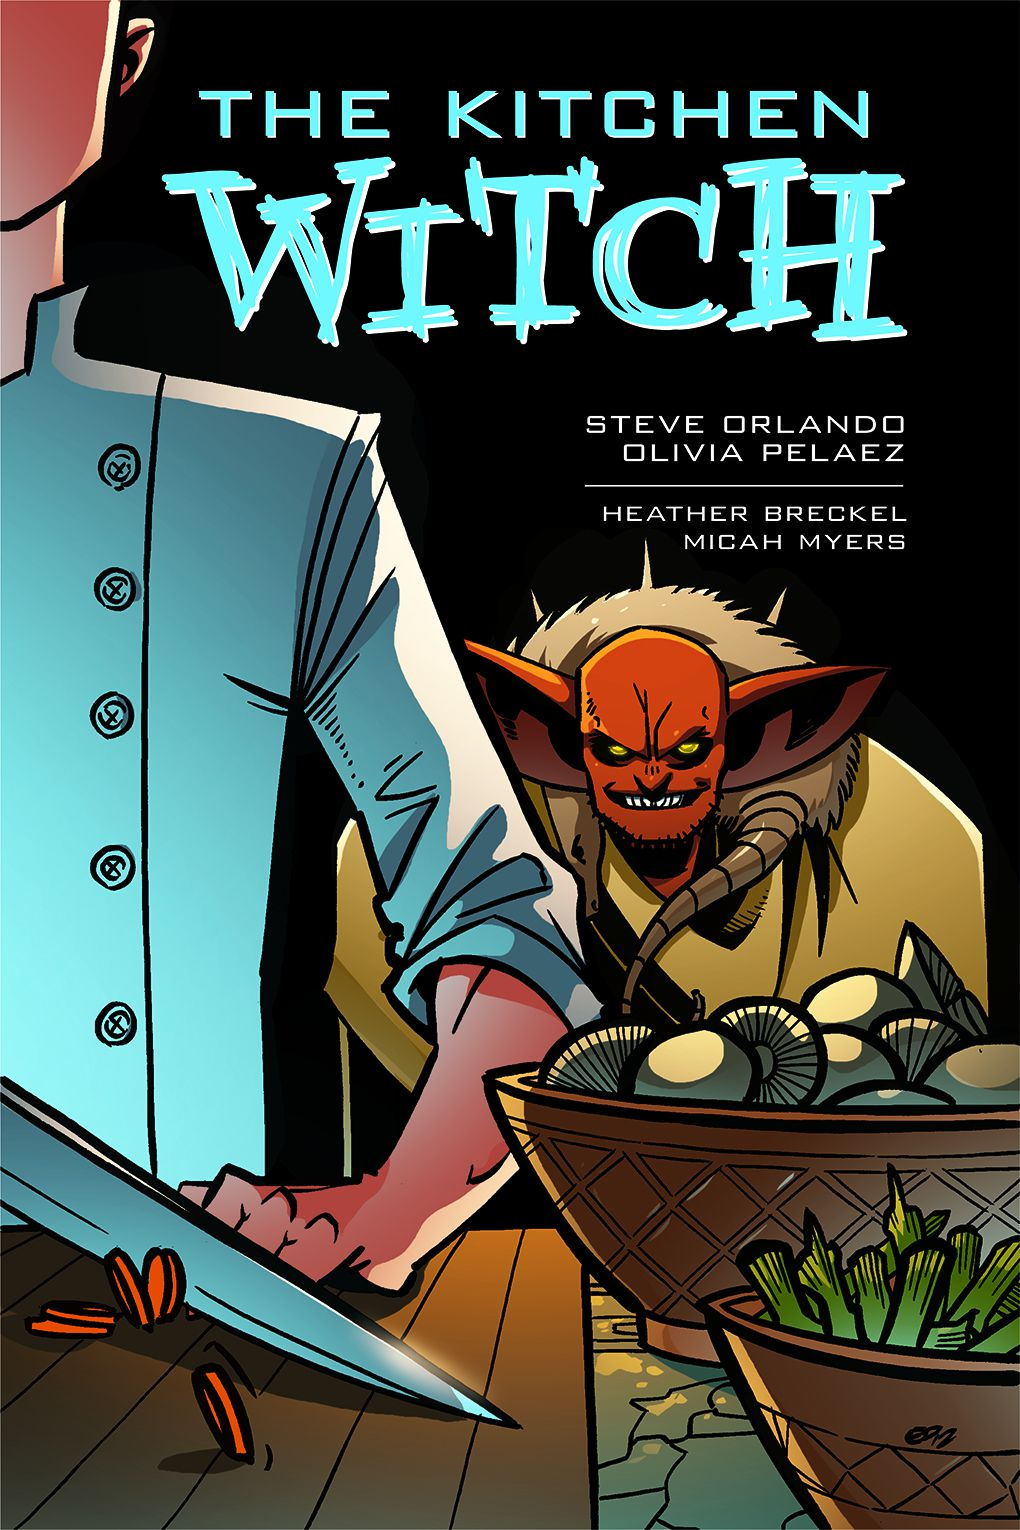 The cover of The Kitchen Witch, 215 Ink (2021).